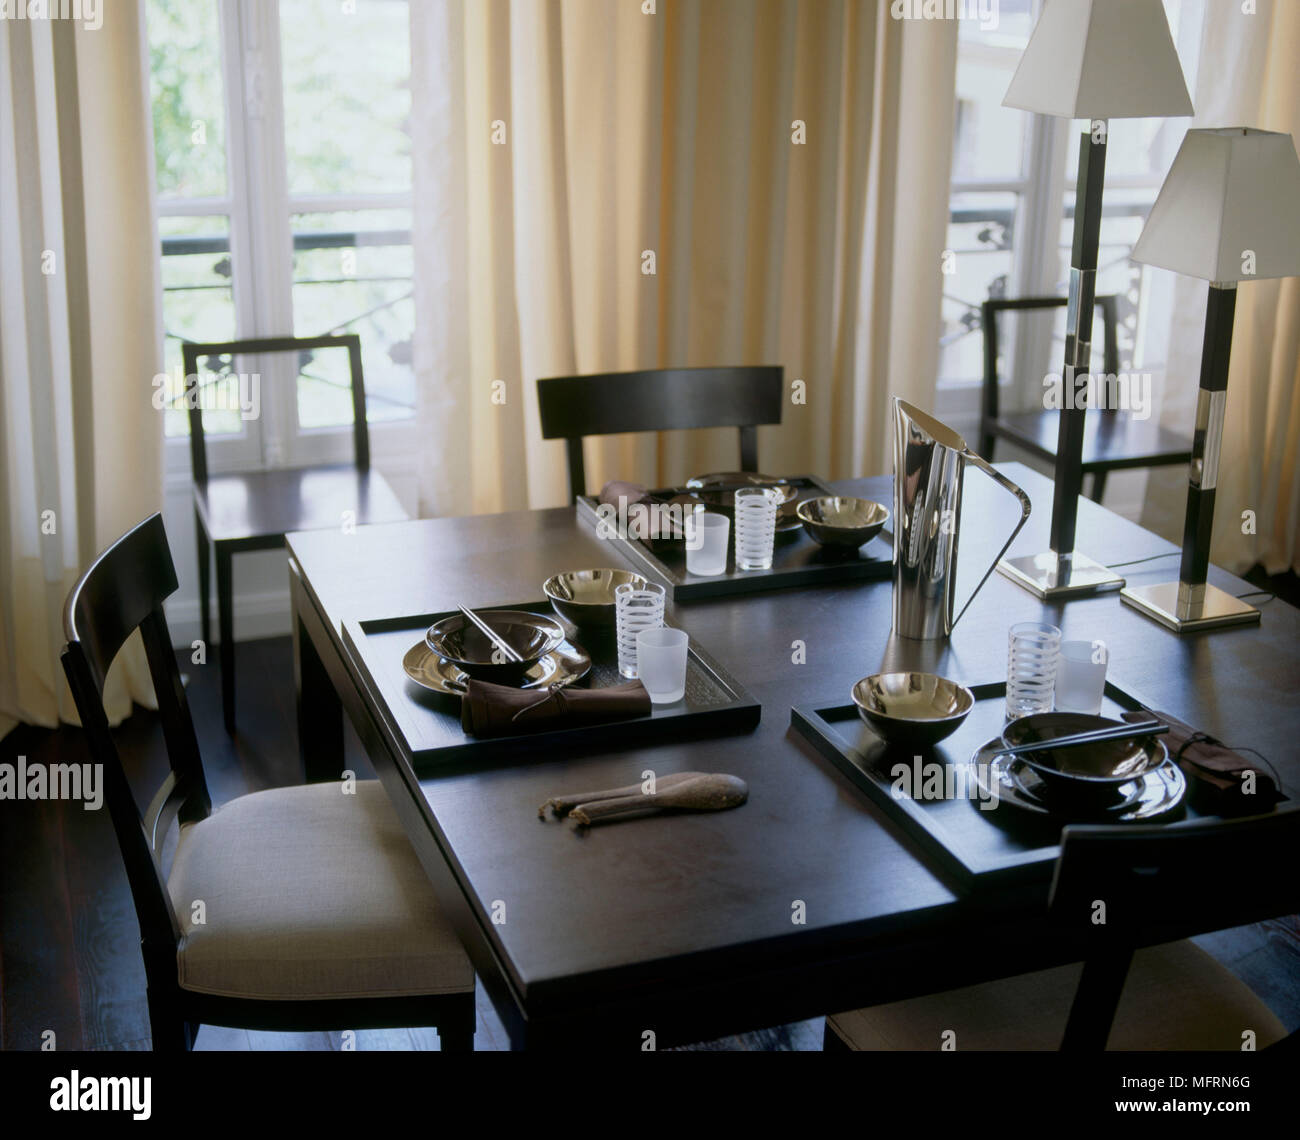 A Detail Of A Modern Dining Room Square Wood Table Upholstered Chairs Table  Setting Open Curtains